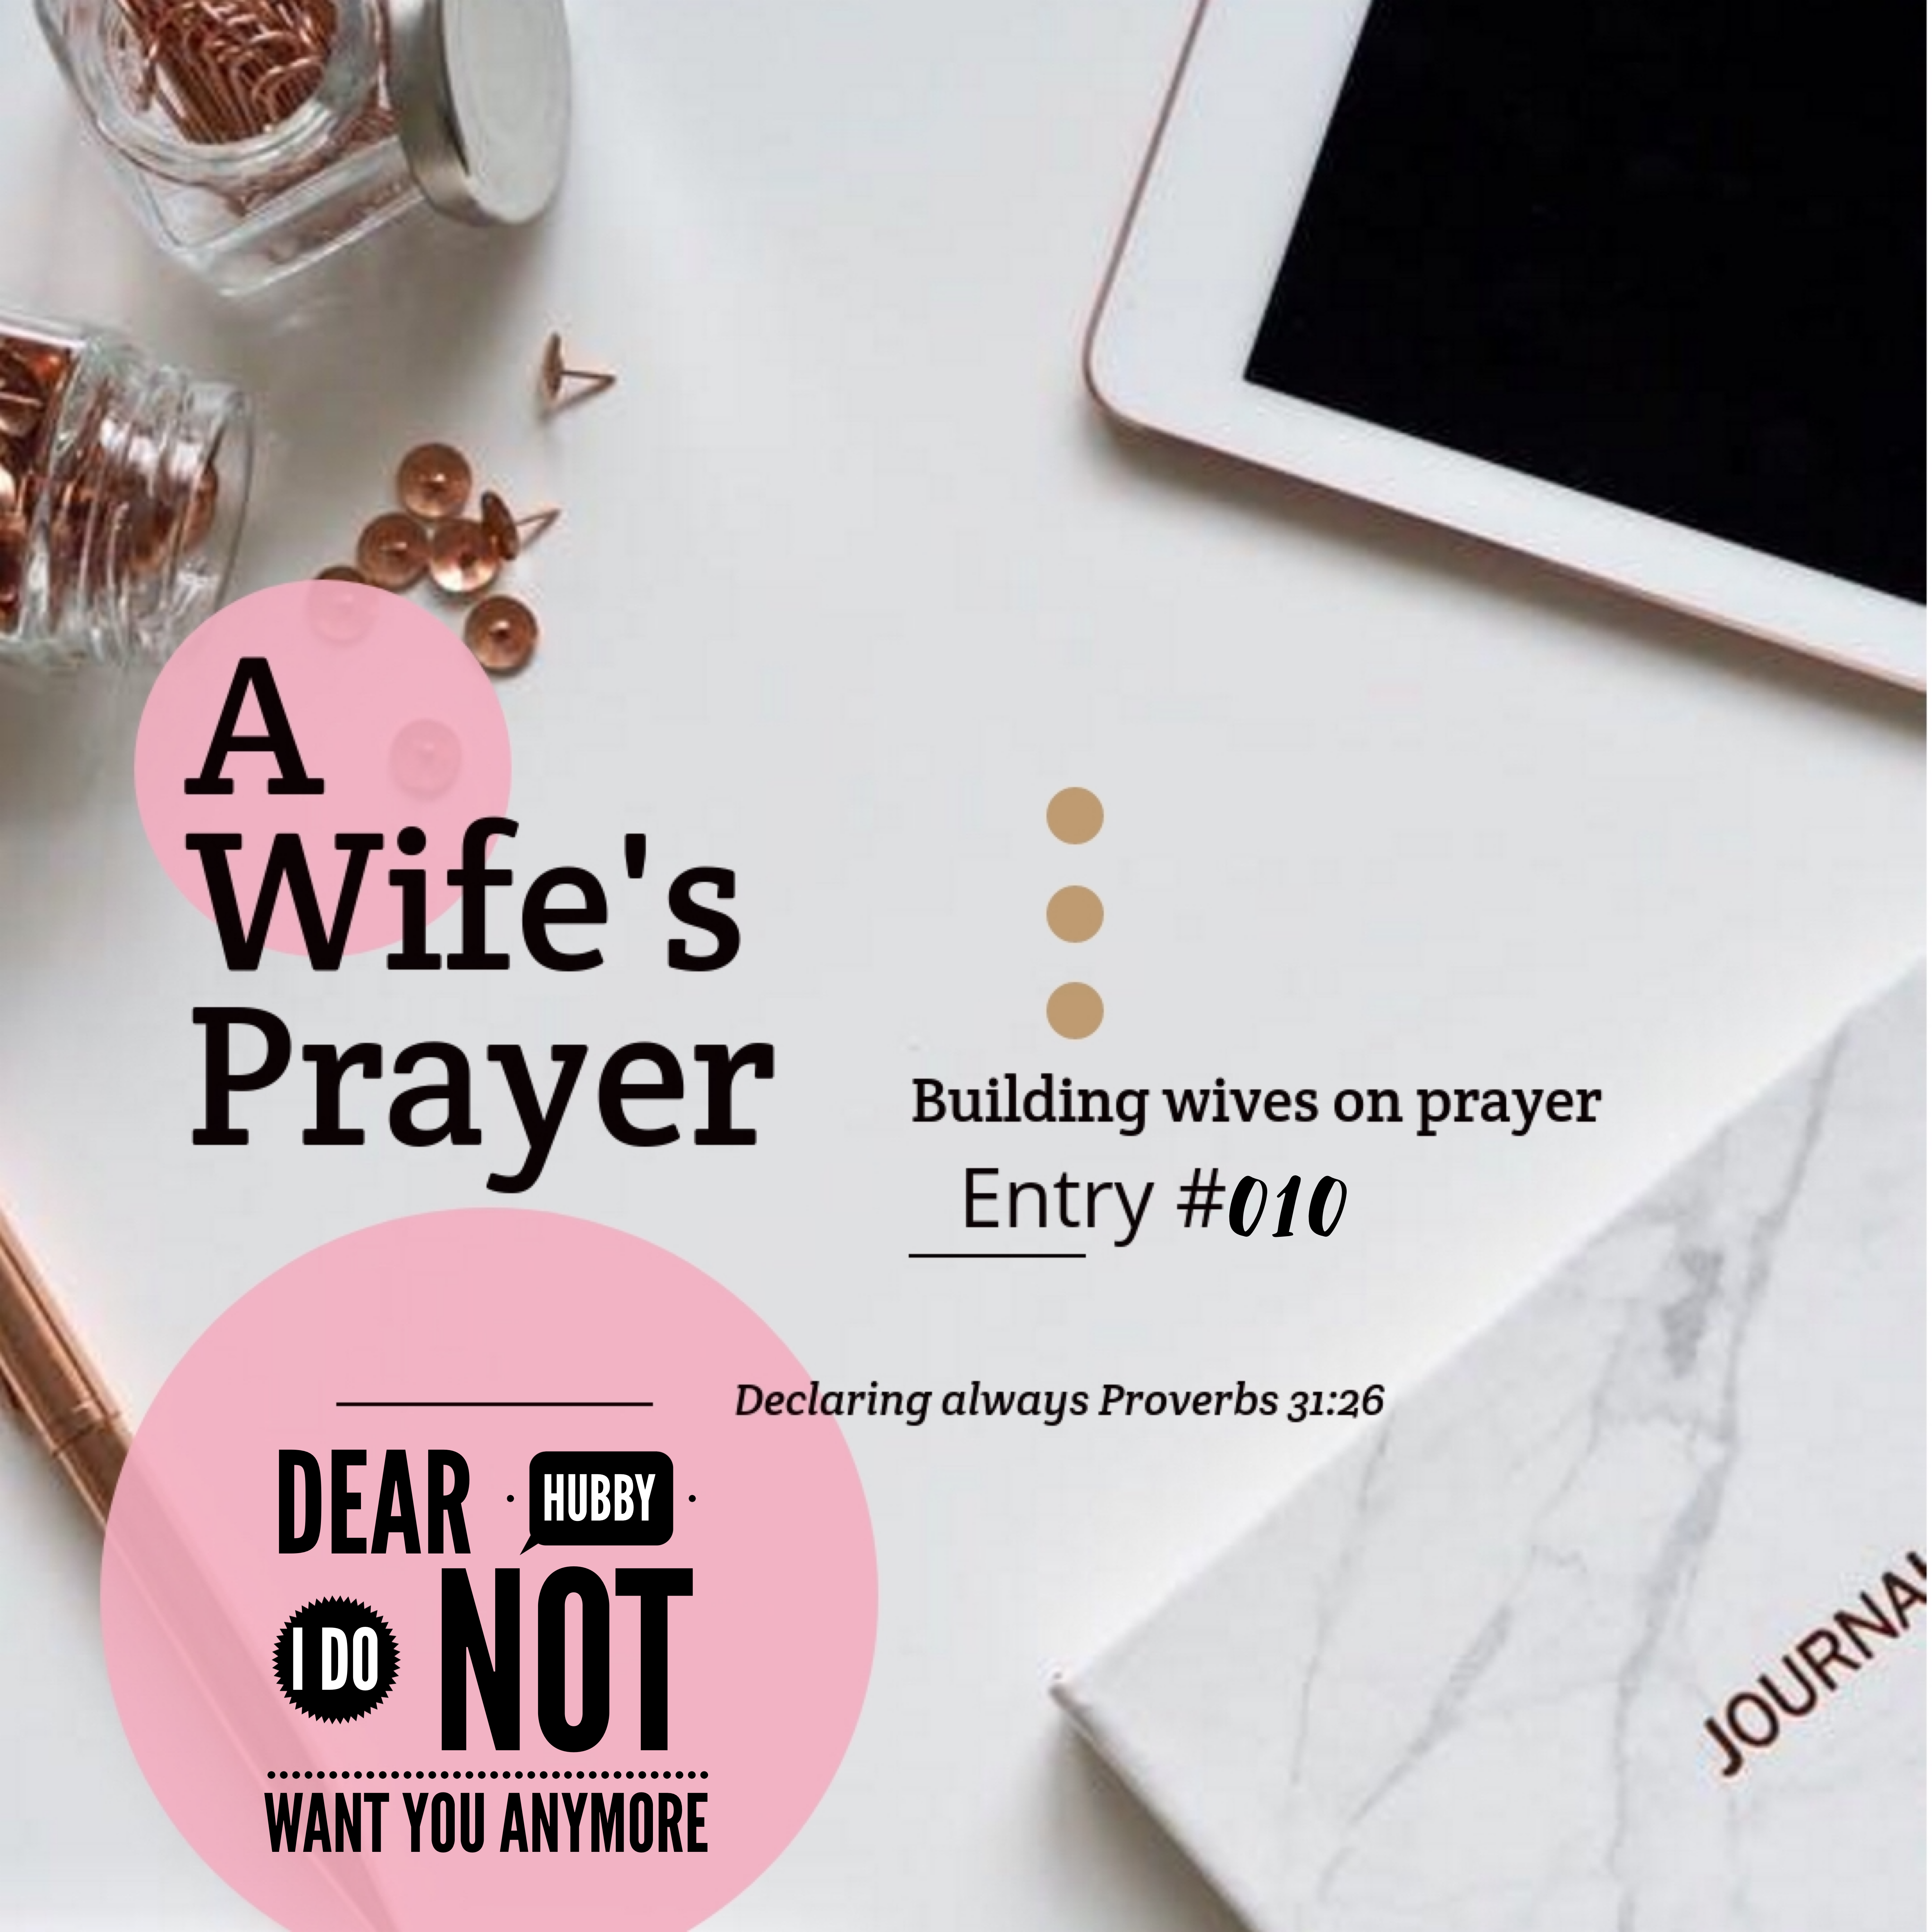 https://mendthevow.com/2019/06/dear-hubby-i-do-not-want-you-anymore/in-the-Custom-structure-text-box./